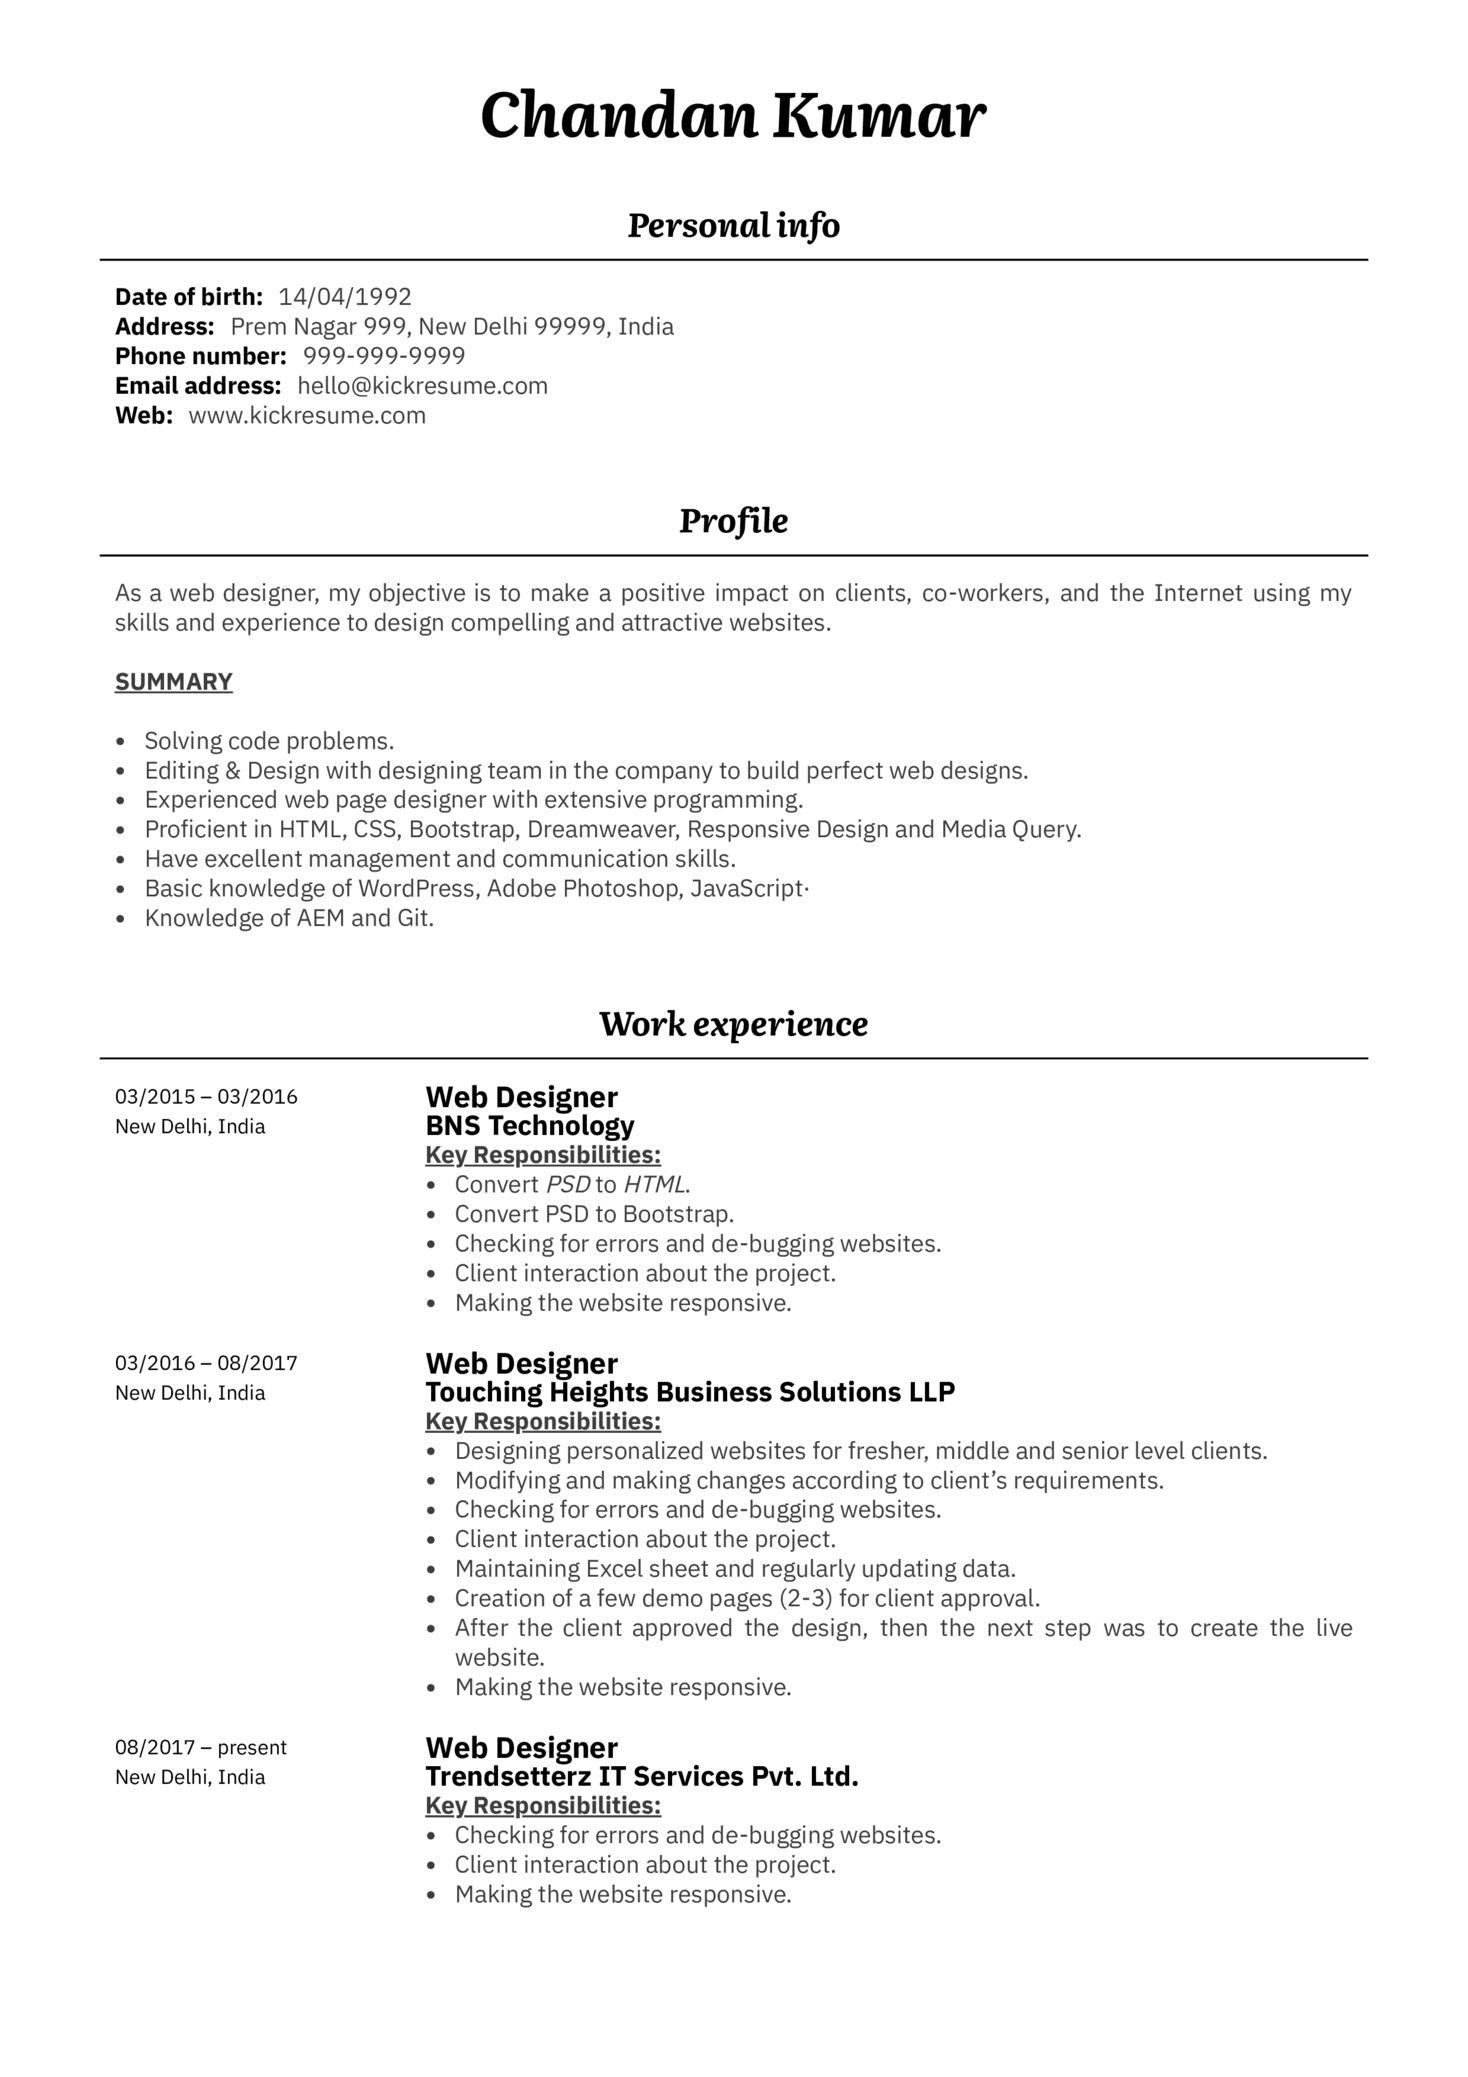 Resume Examples By Real People Web Designer At Trendsetterz